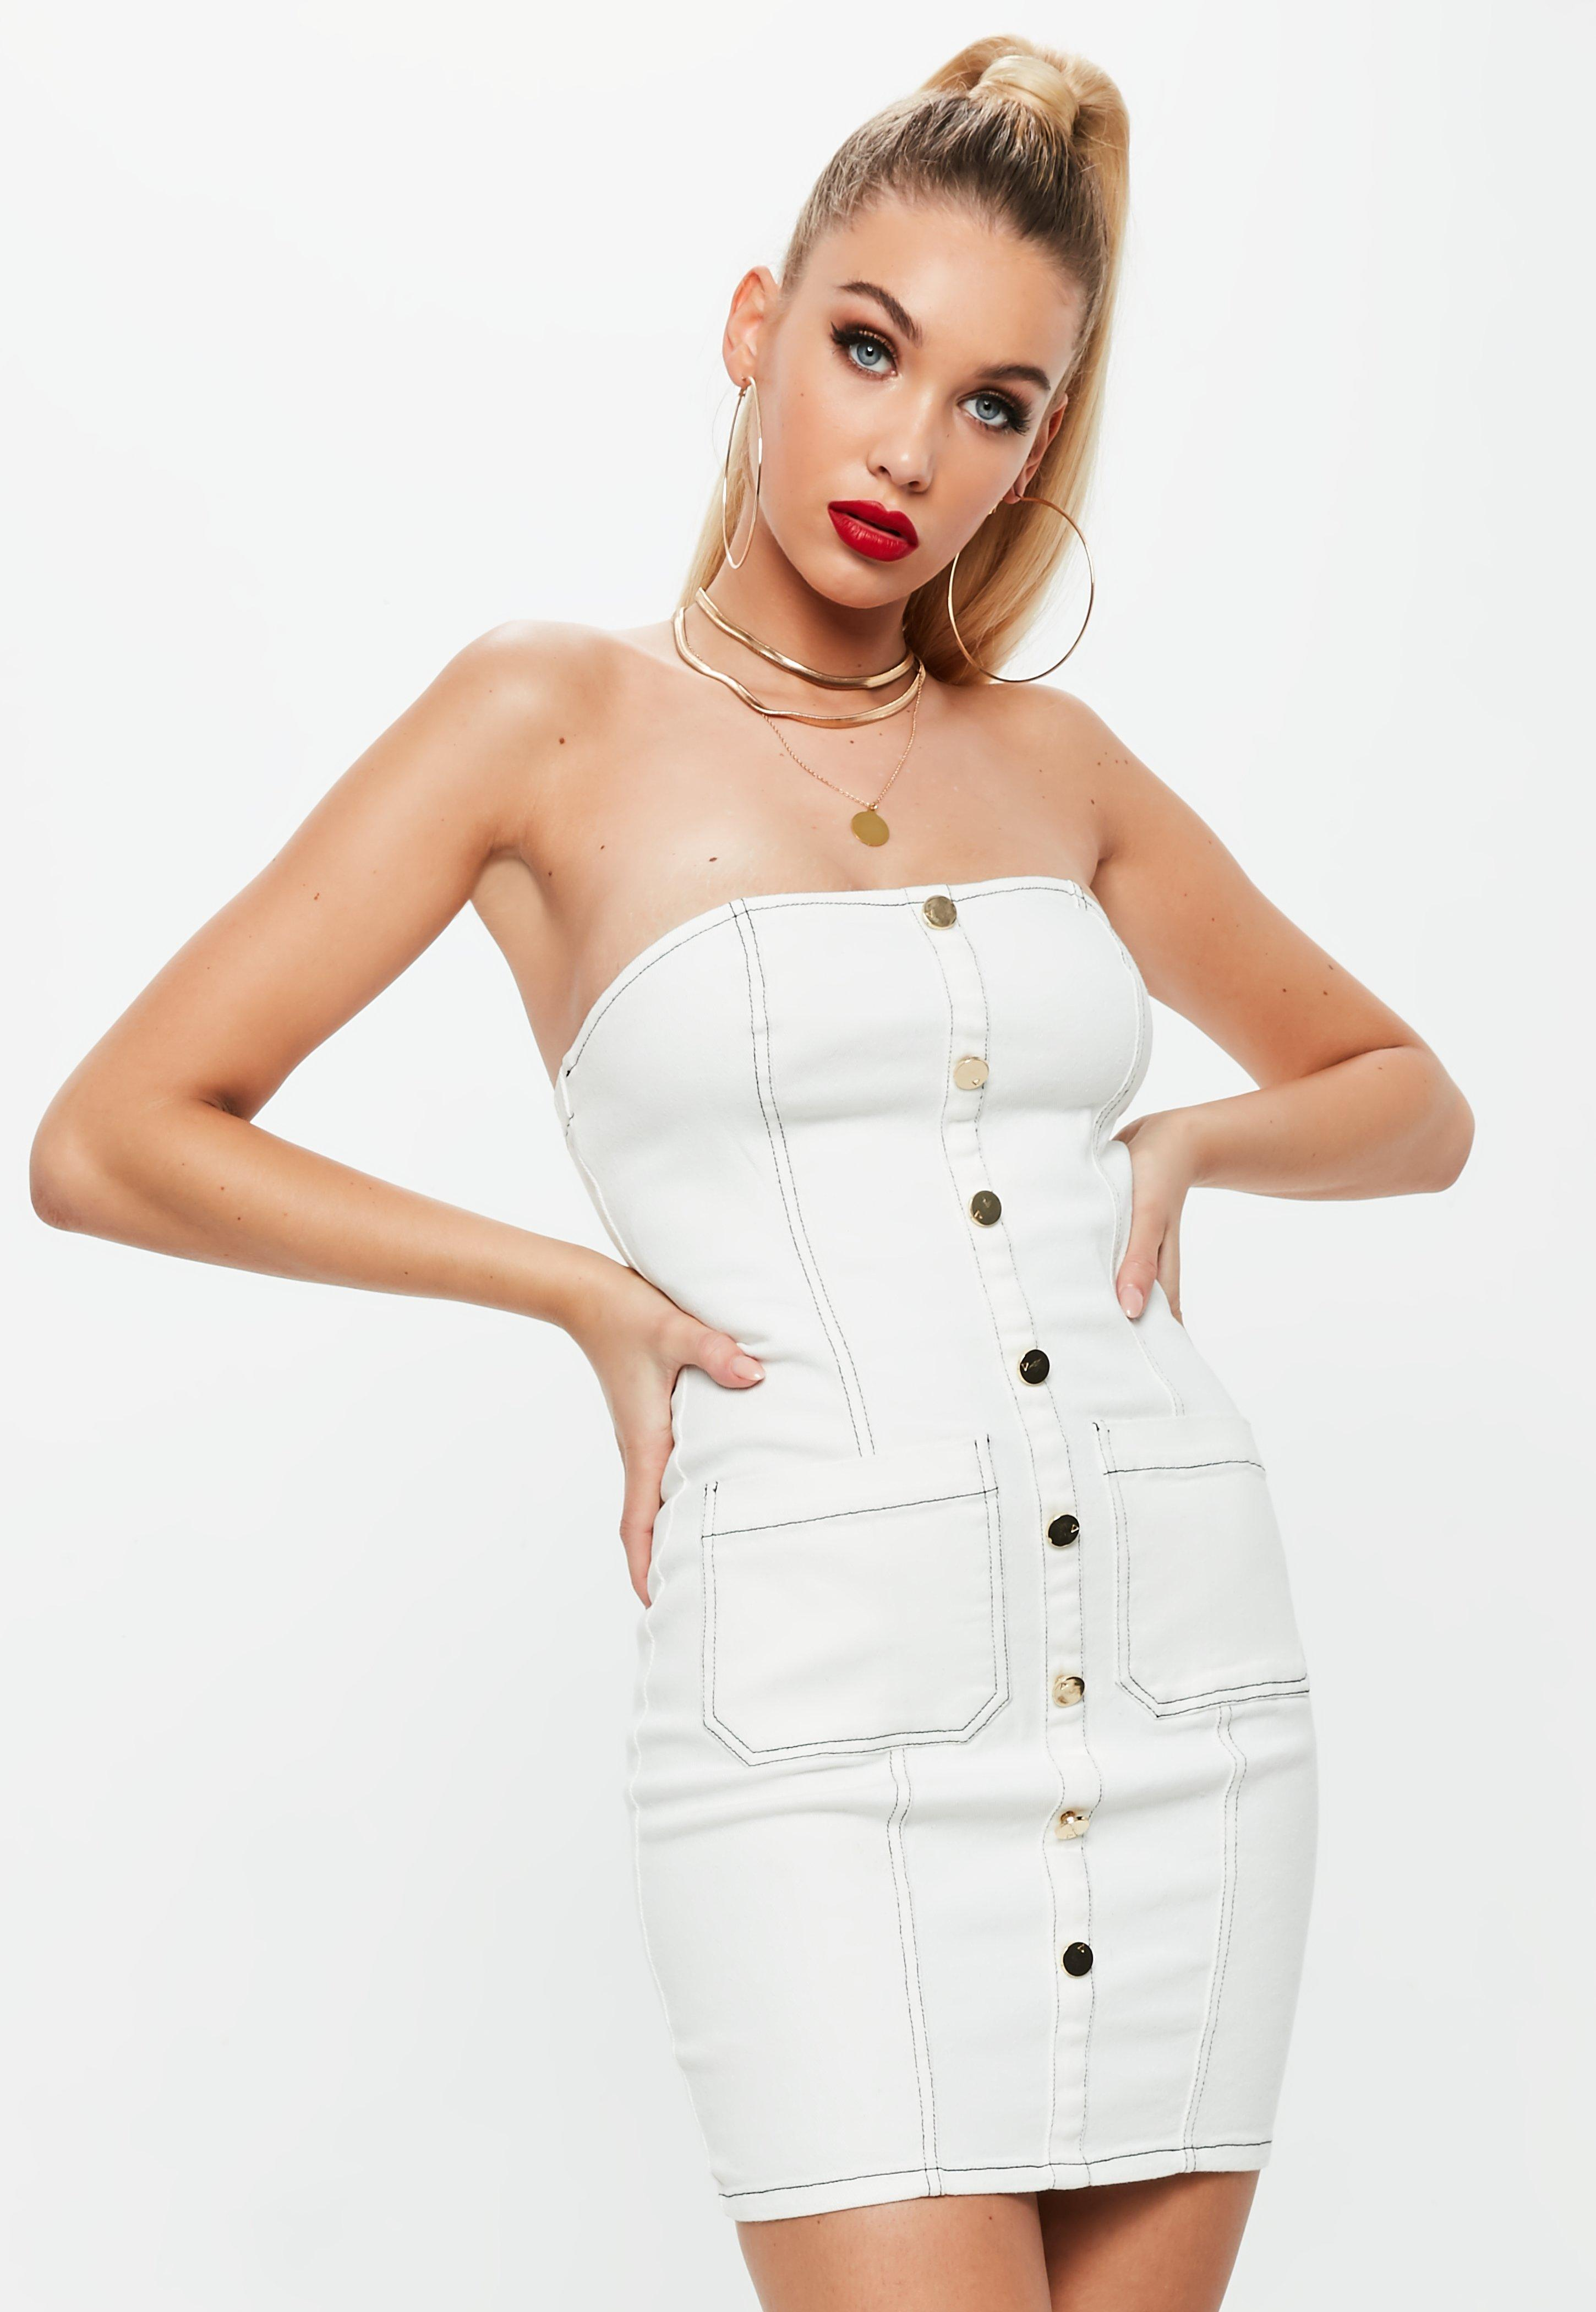 Missguided Strapless Contrast Stitch Denim Dress Choice Online Cheap Recommend Collections XWyzU8H